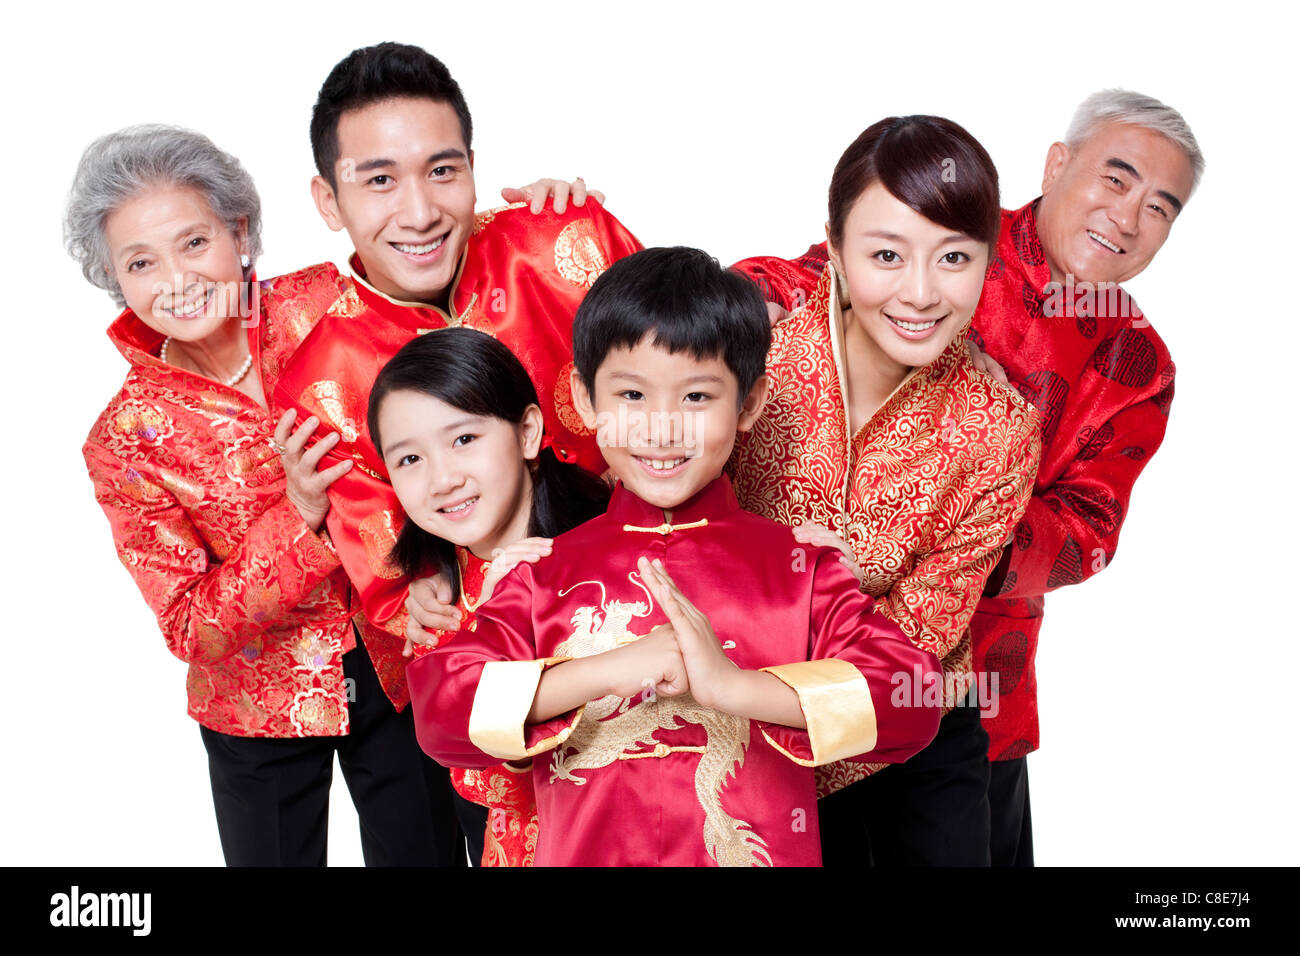 Happy chinese new year stock photo. Image of healthy ...